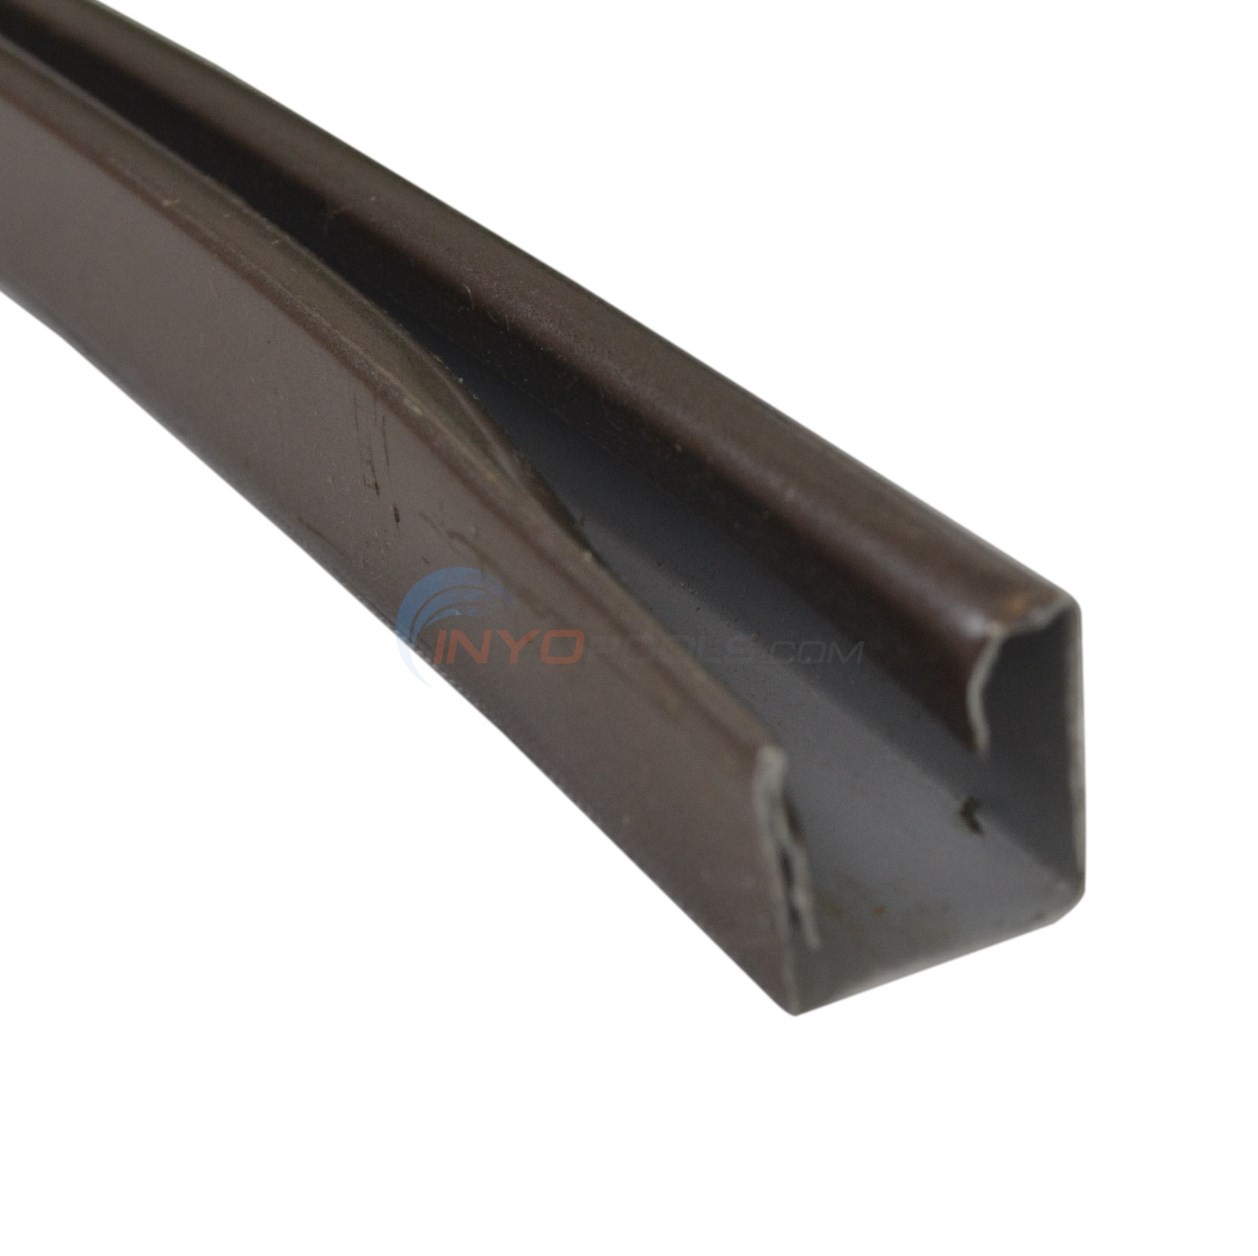 "12' Bottom Rail 44-5/8"" (Single) For The Atlantis"